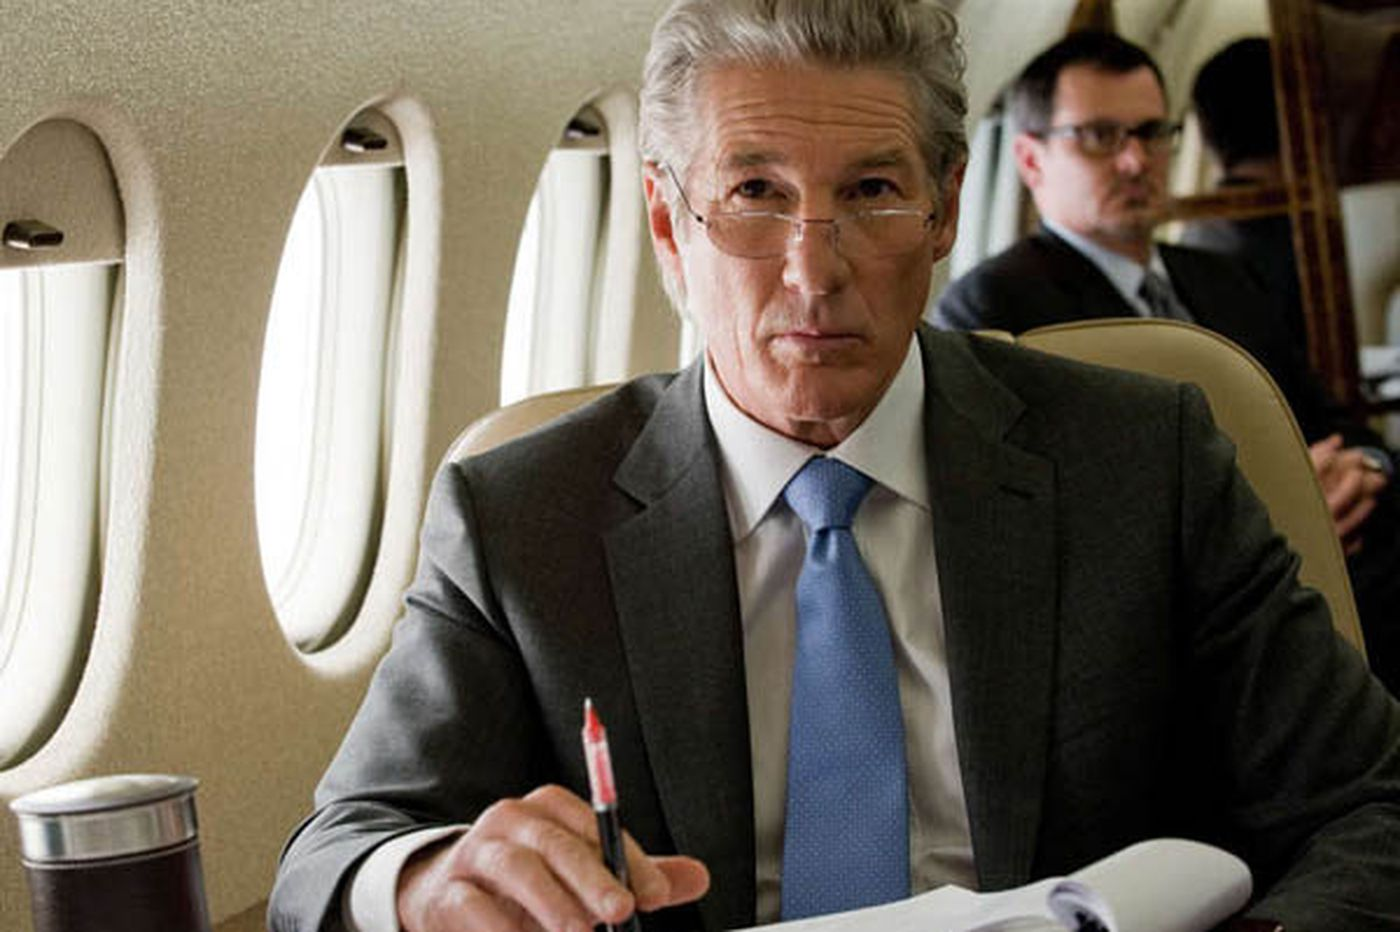 Richard Gere picks Philly for his next movie